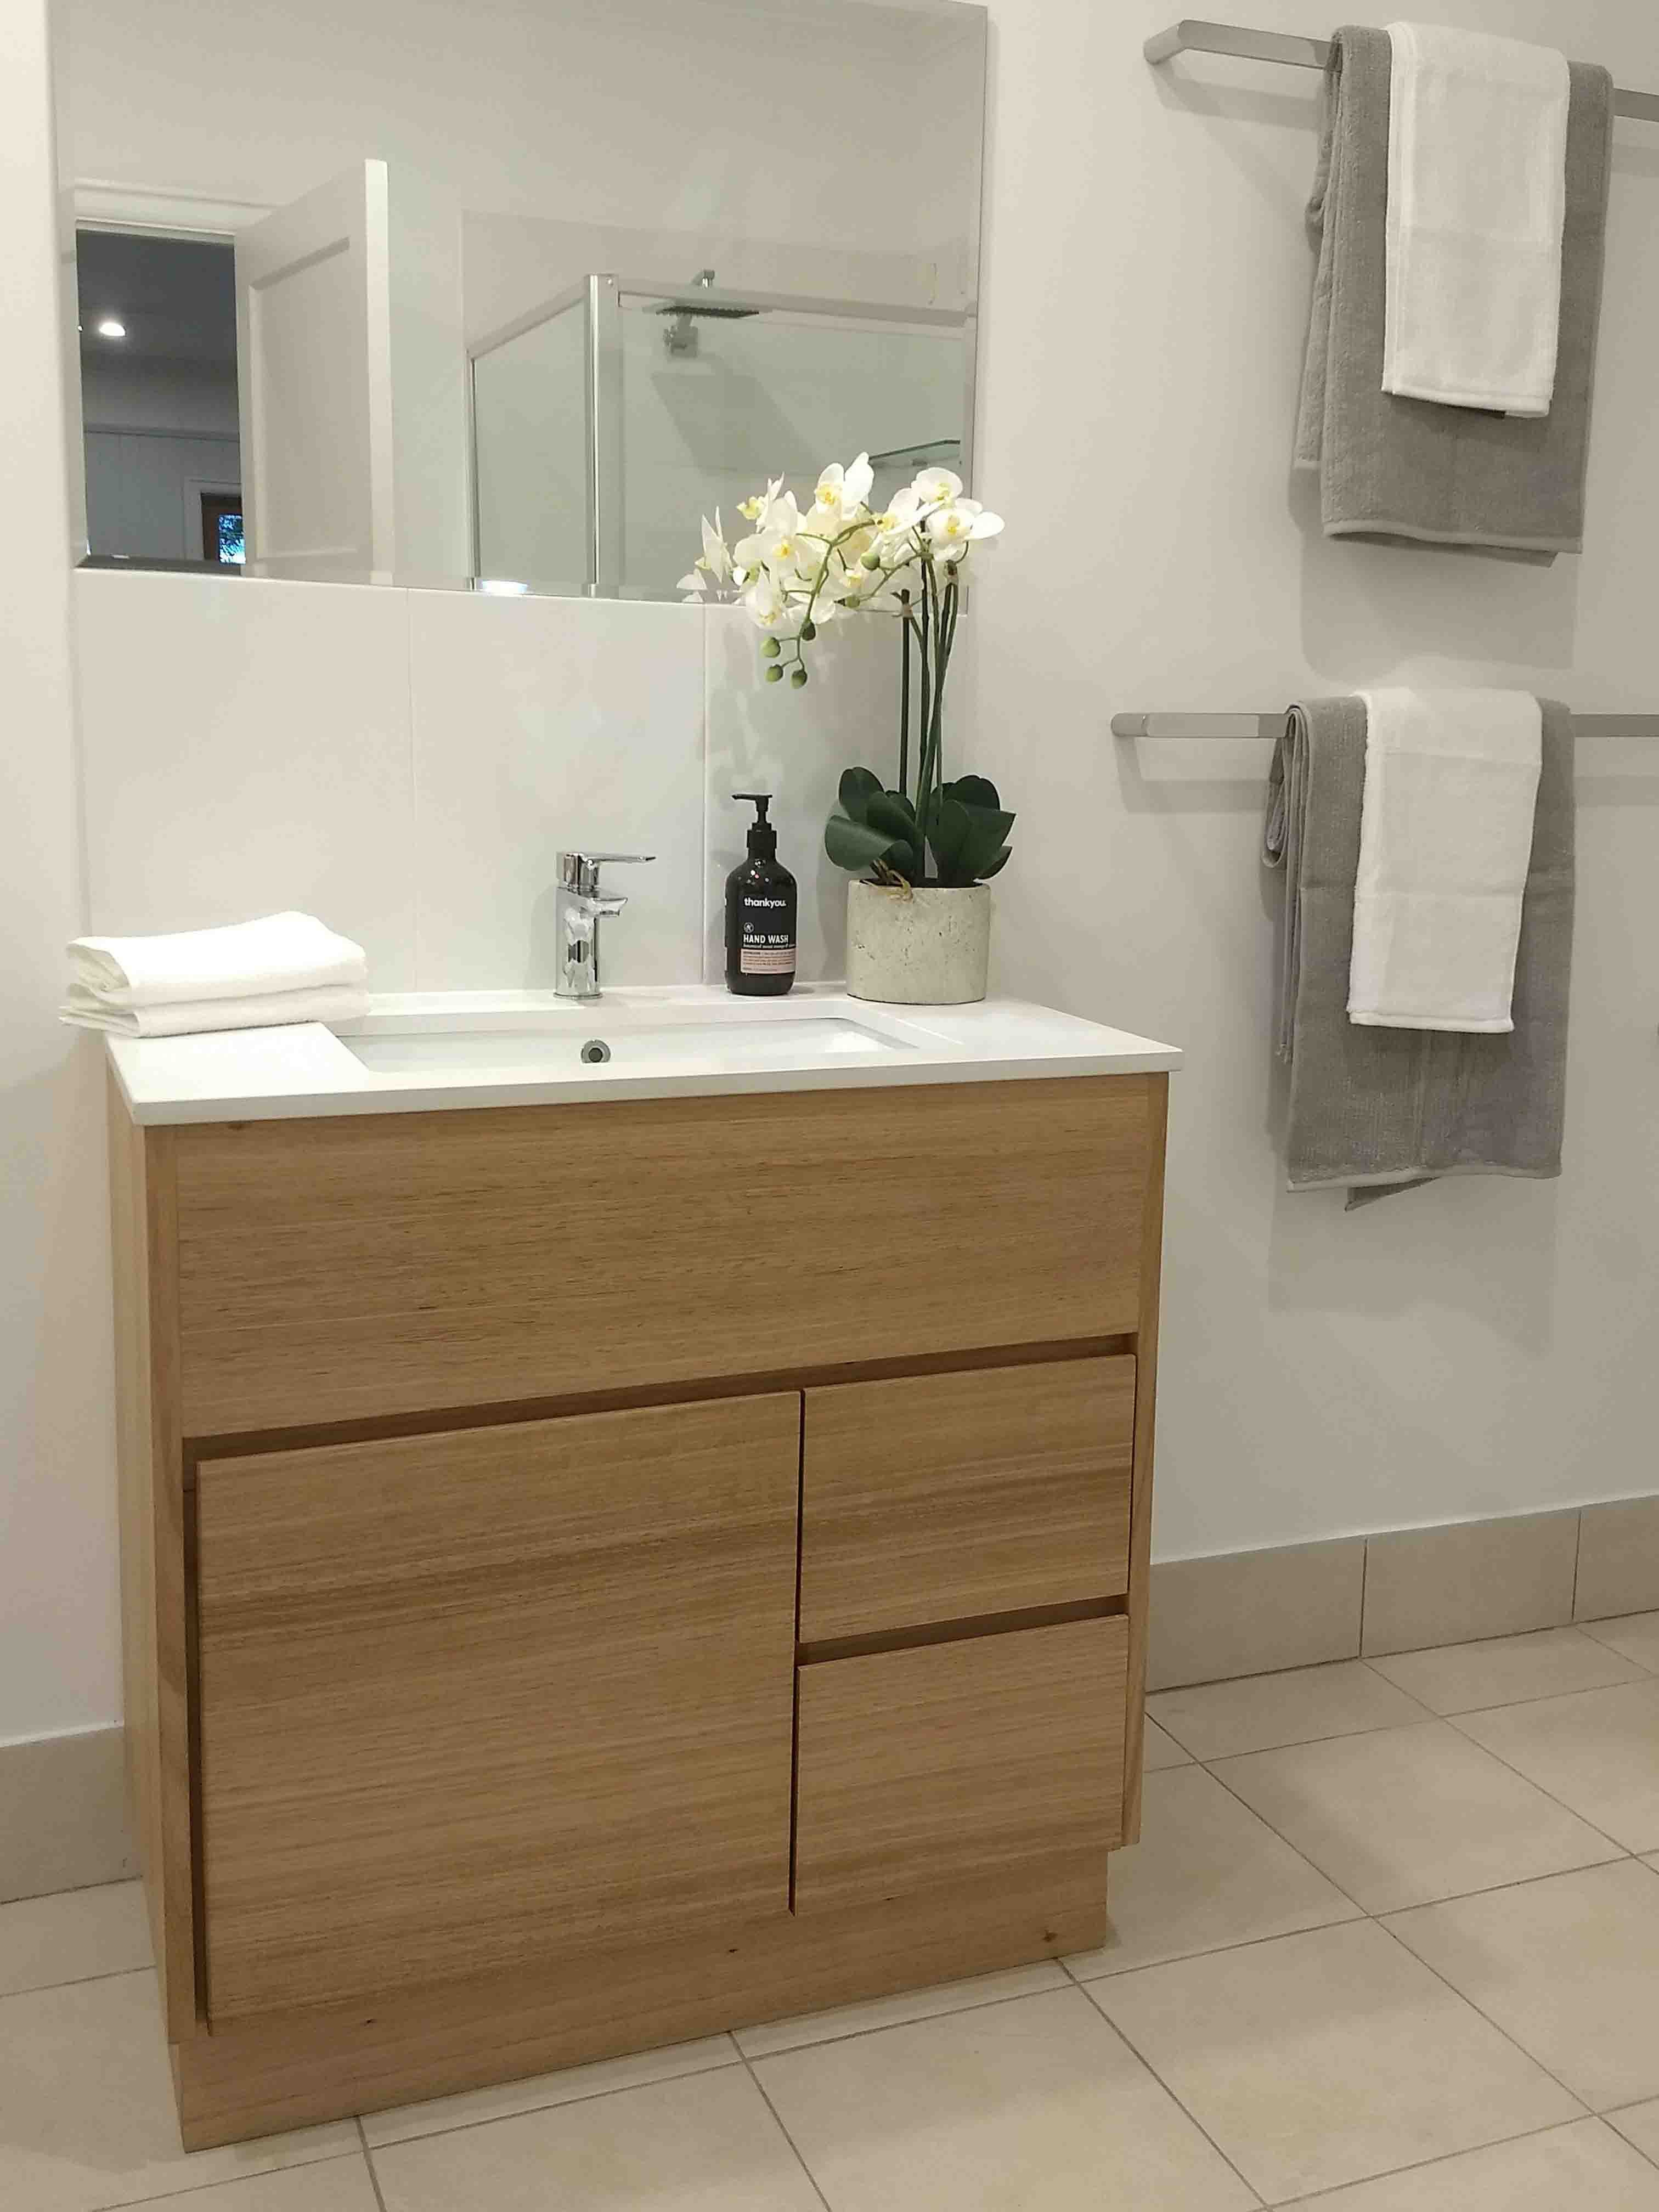 Timber Floor Standing Vanity custom made from Victorian Ash by One Tree Studio.